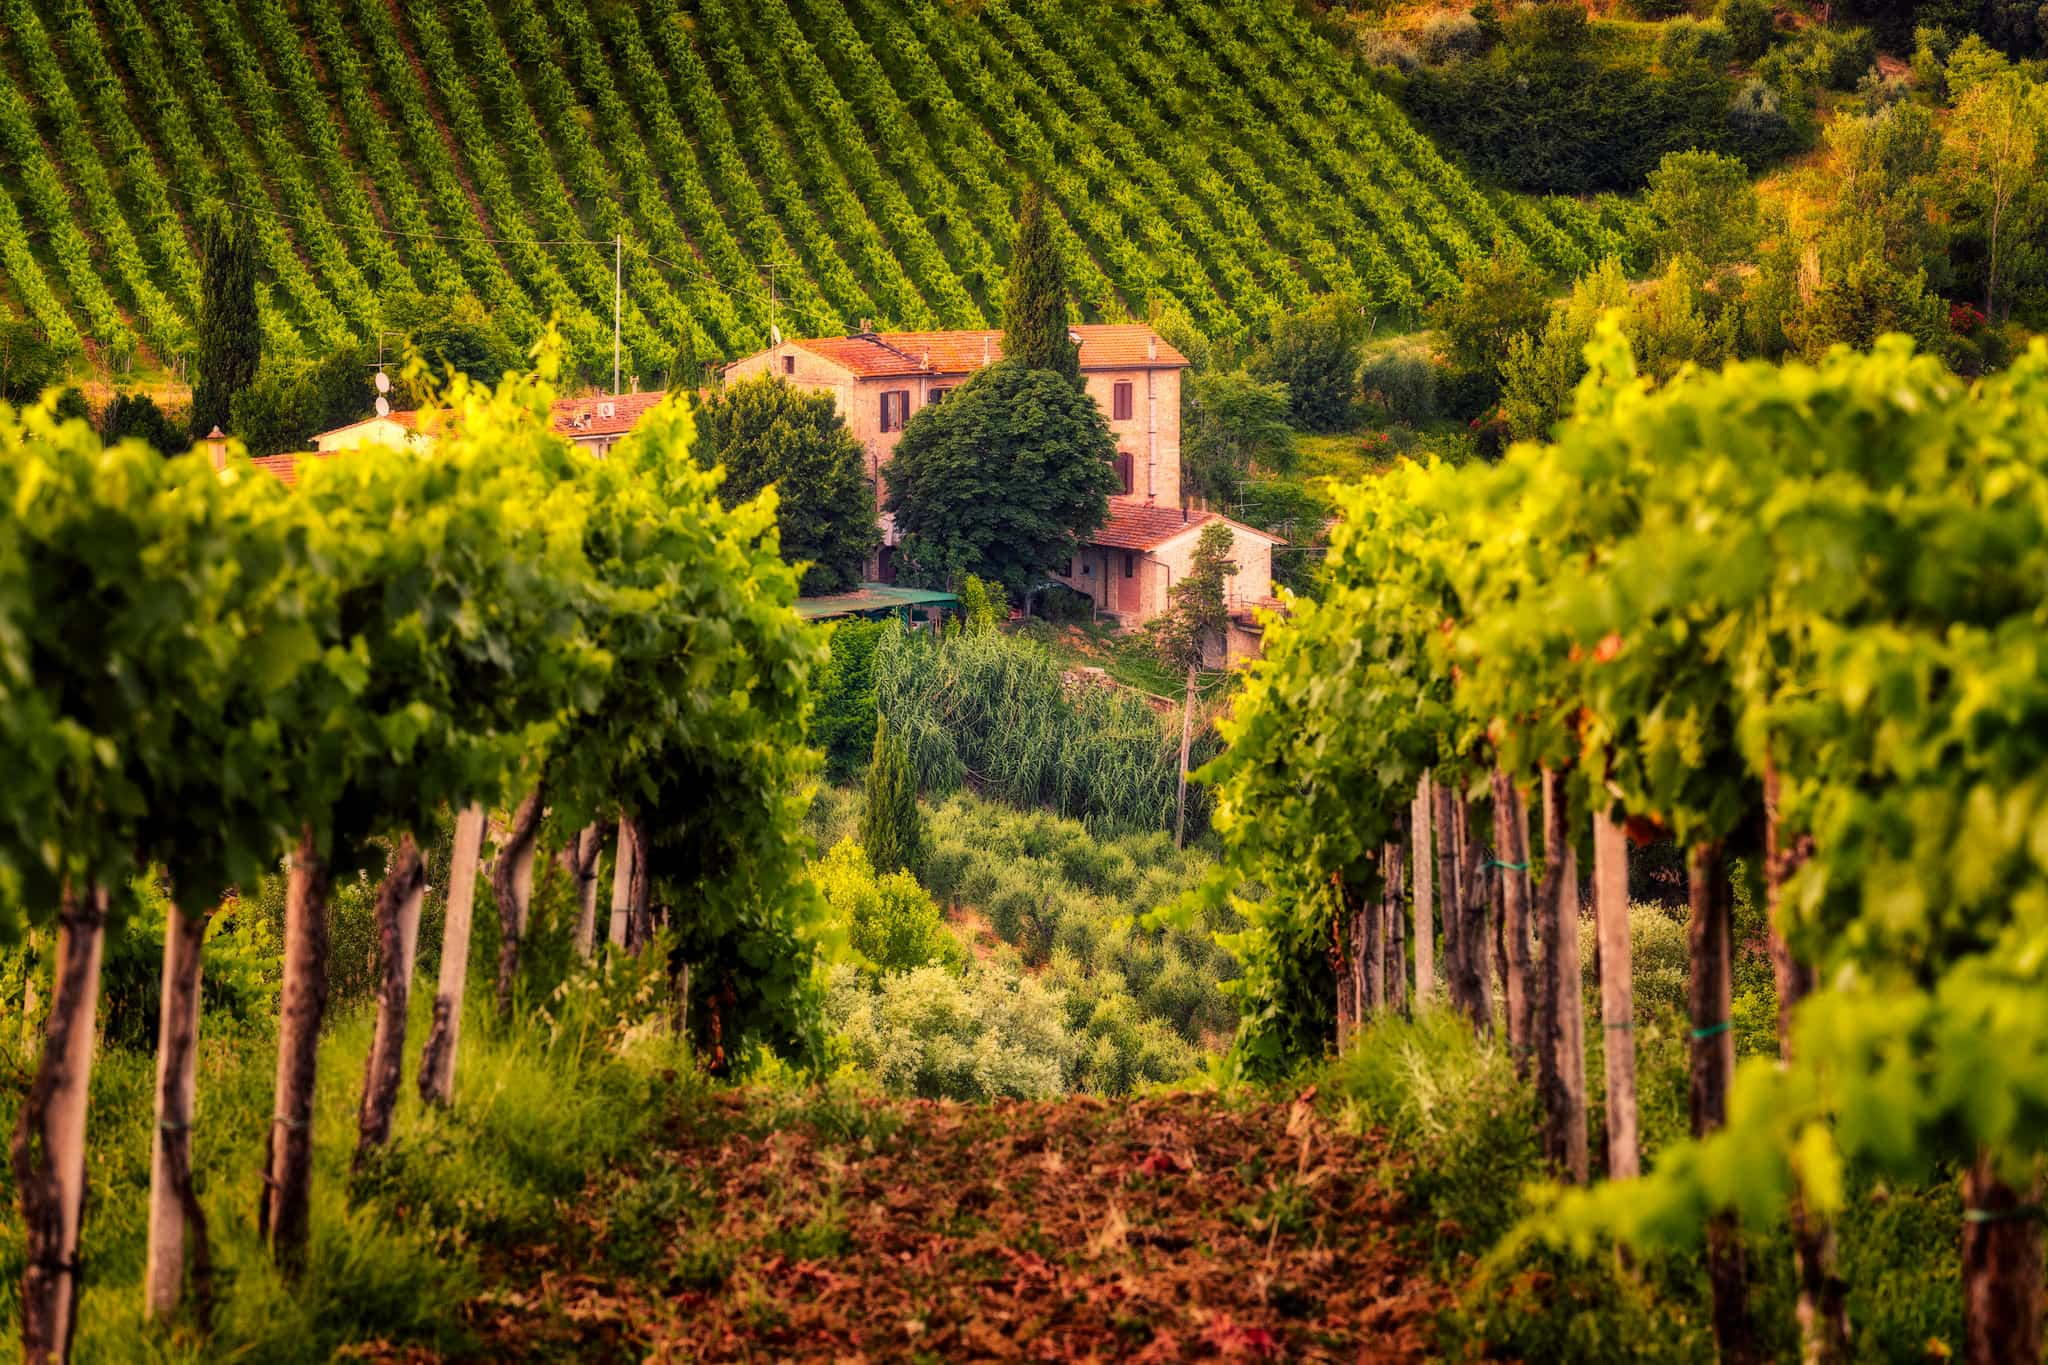 Tuscany's vineyards by a villa, Italy.